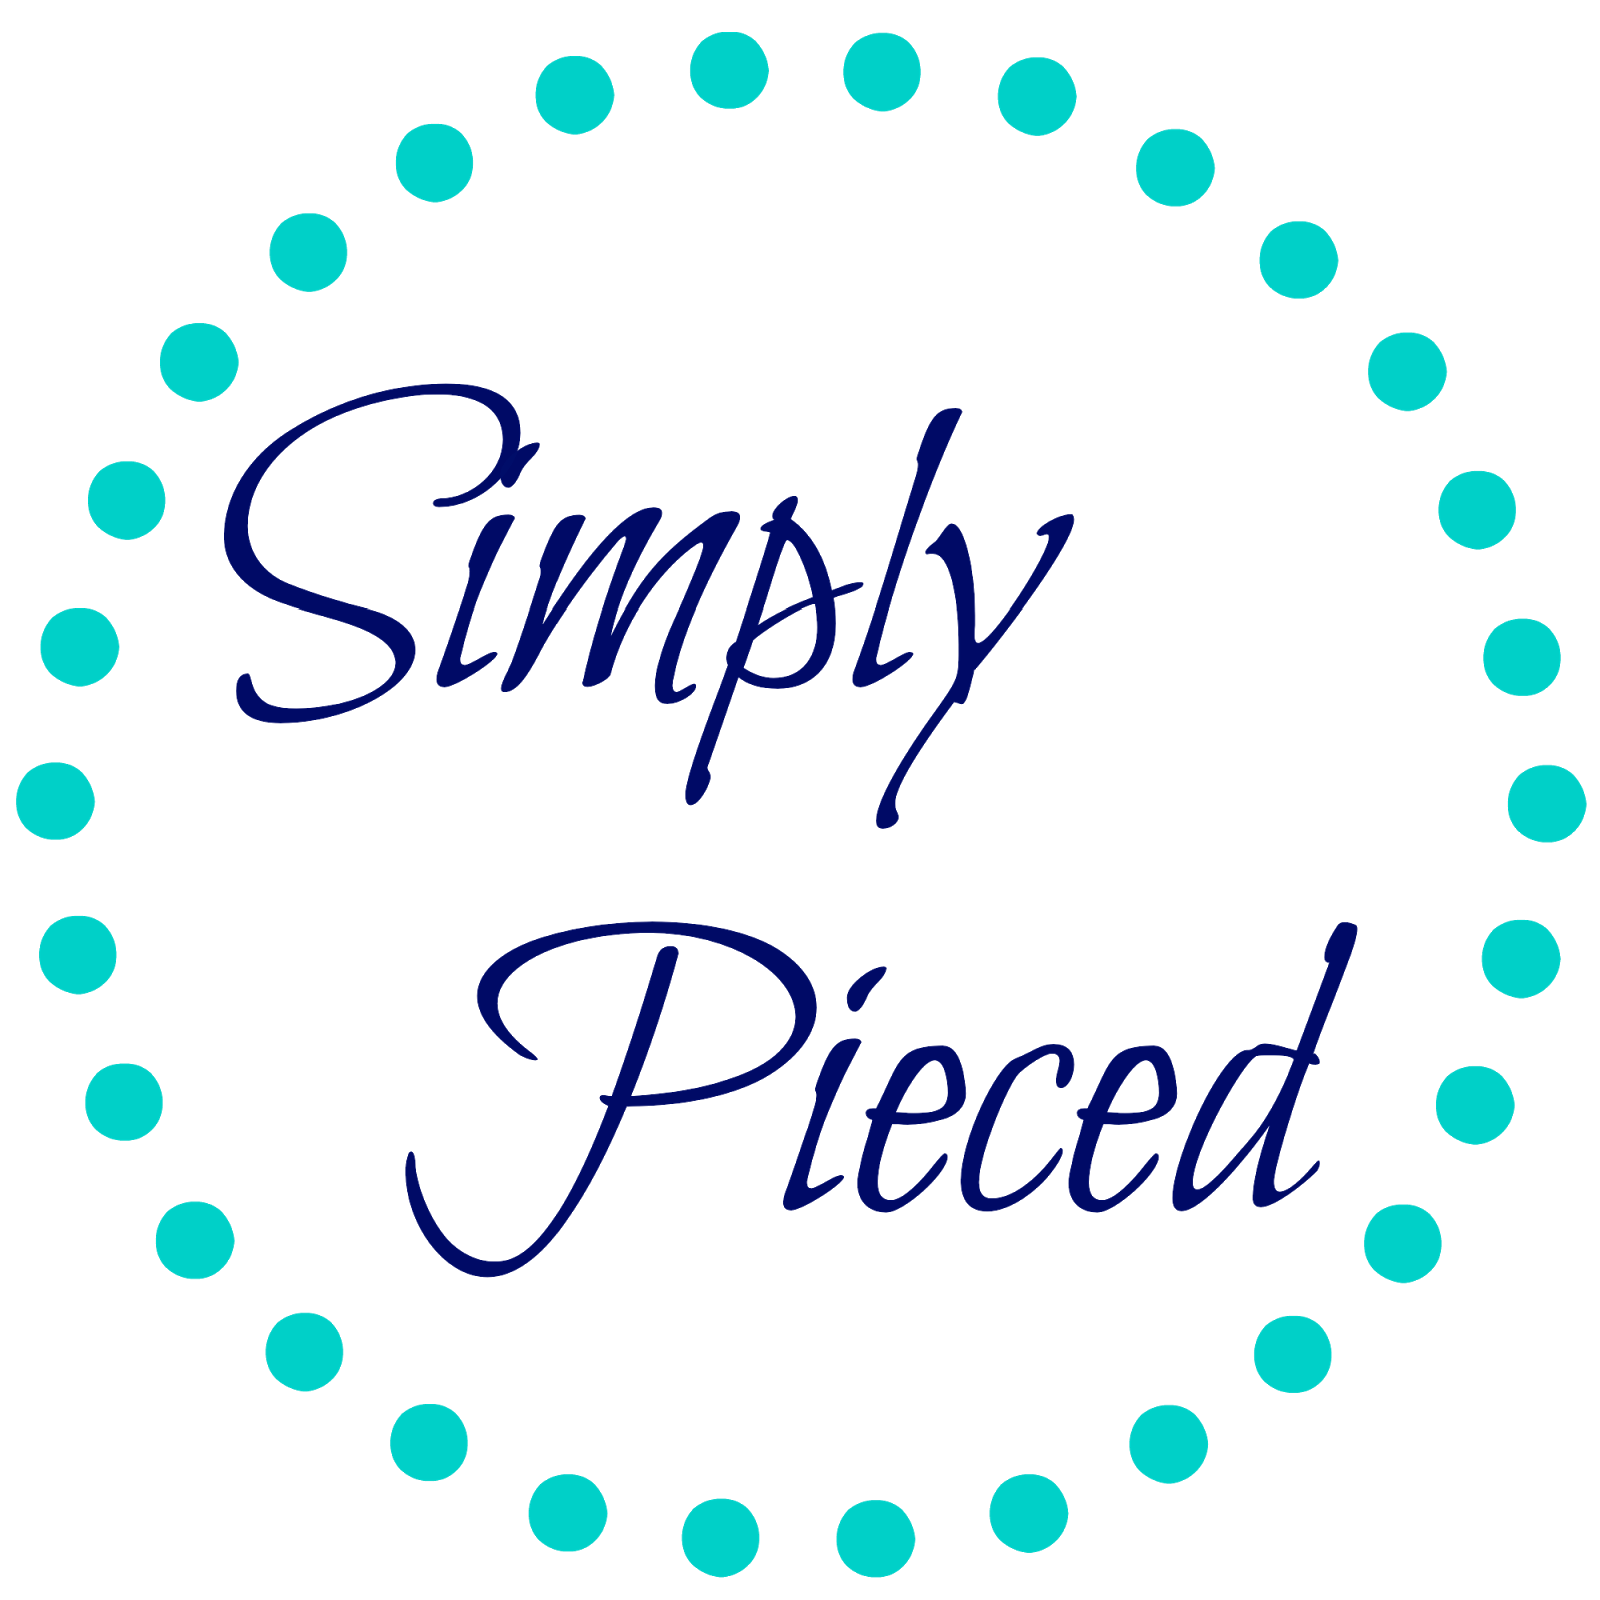 http://simplypieced.blogspot.com/